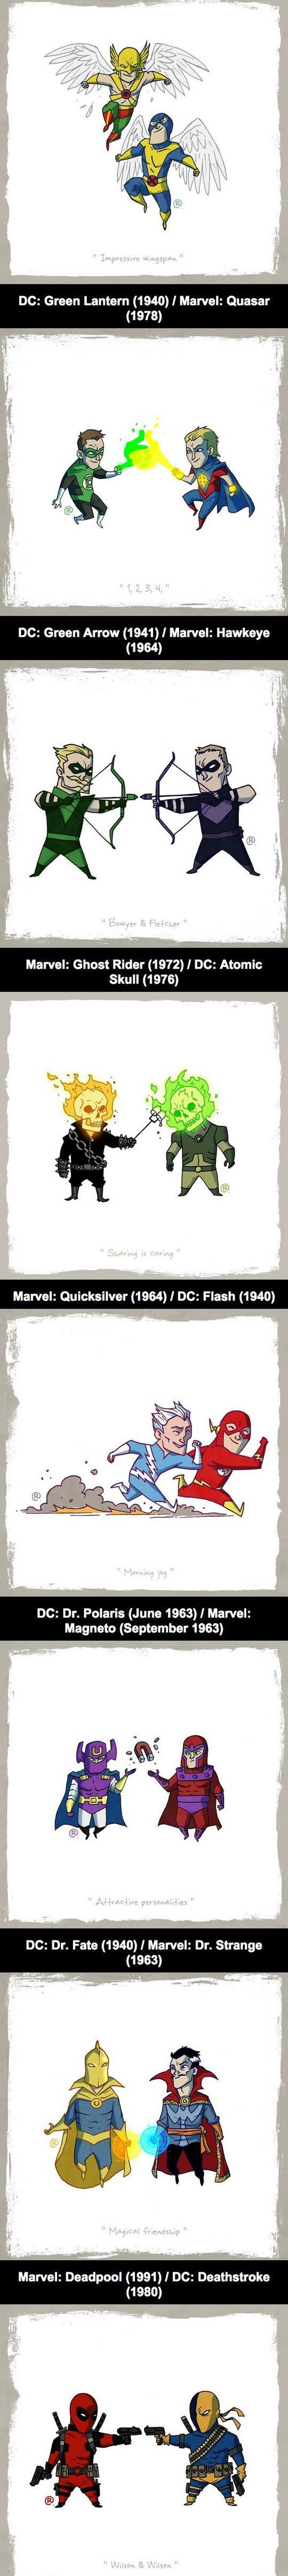 Marvel Vs DC: Caracteres equivalentes: